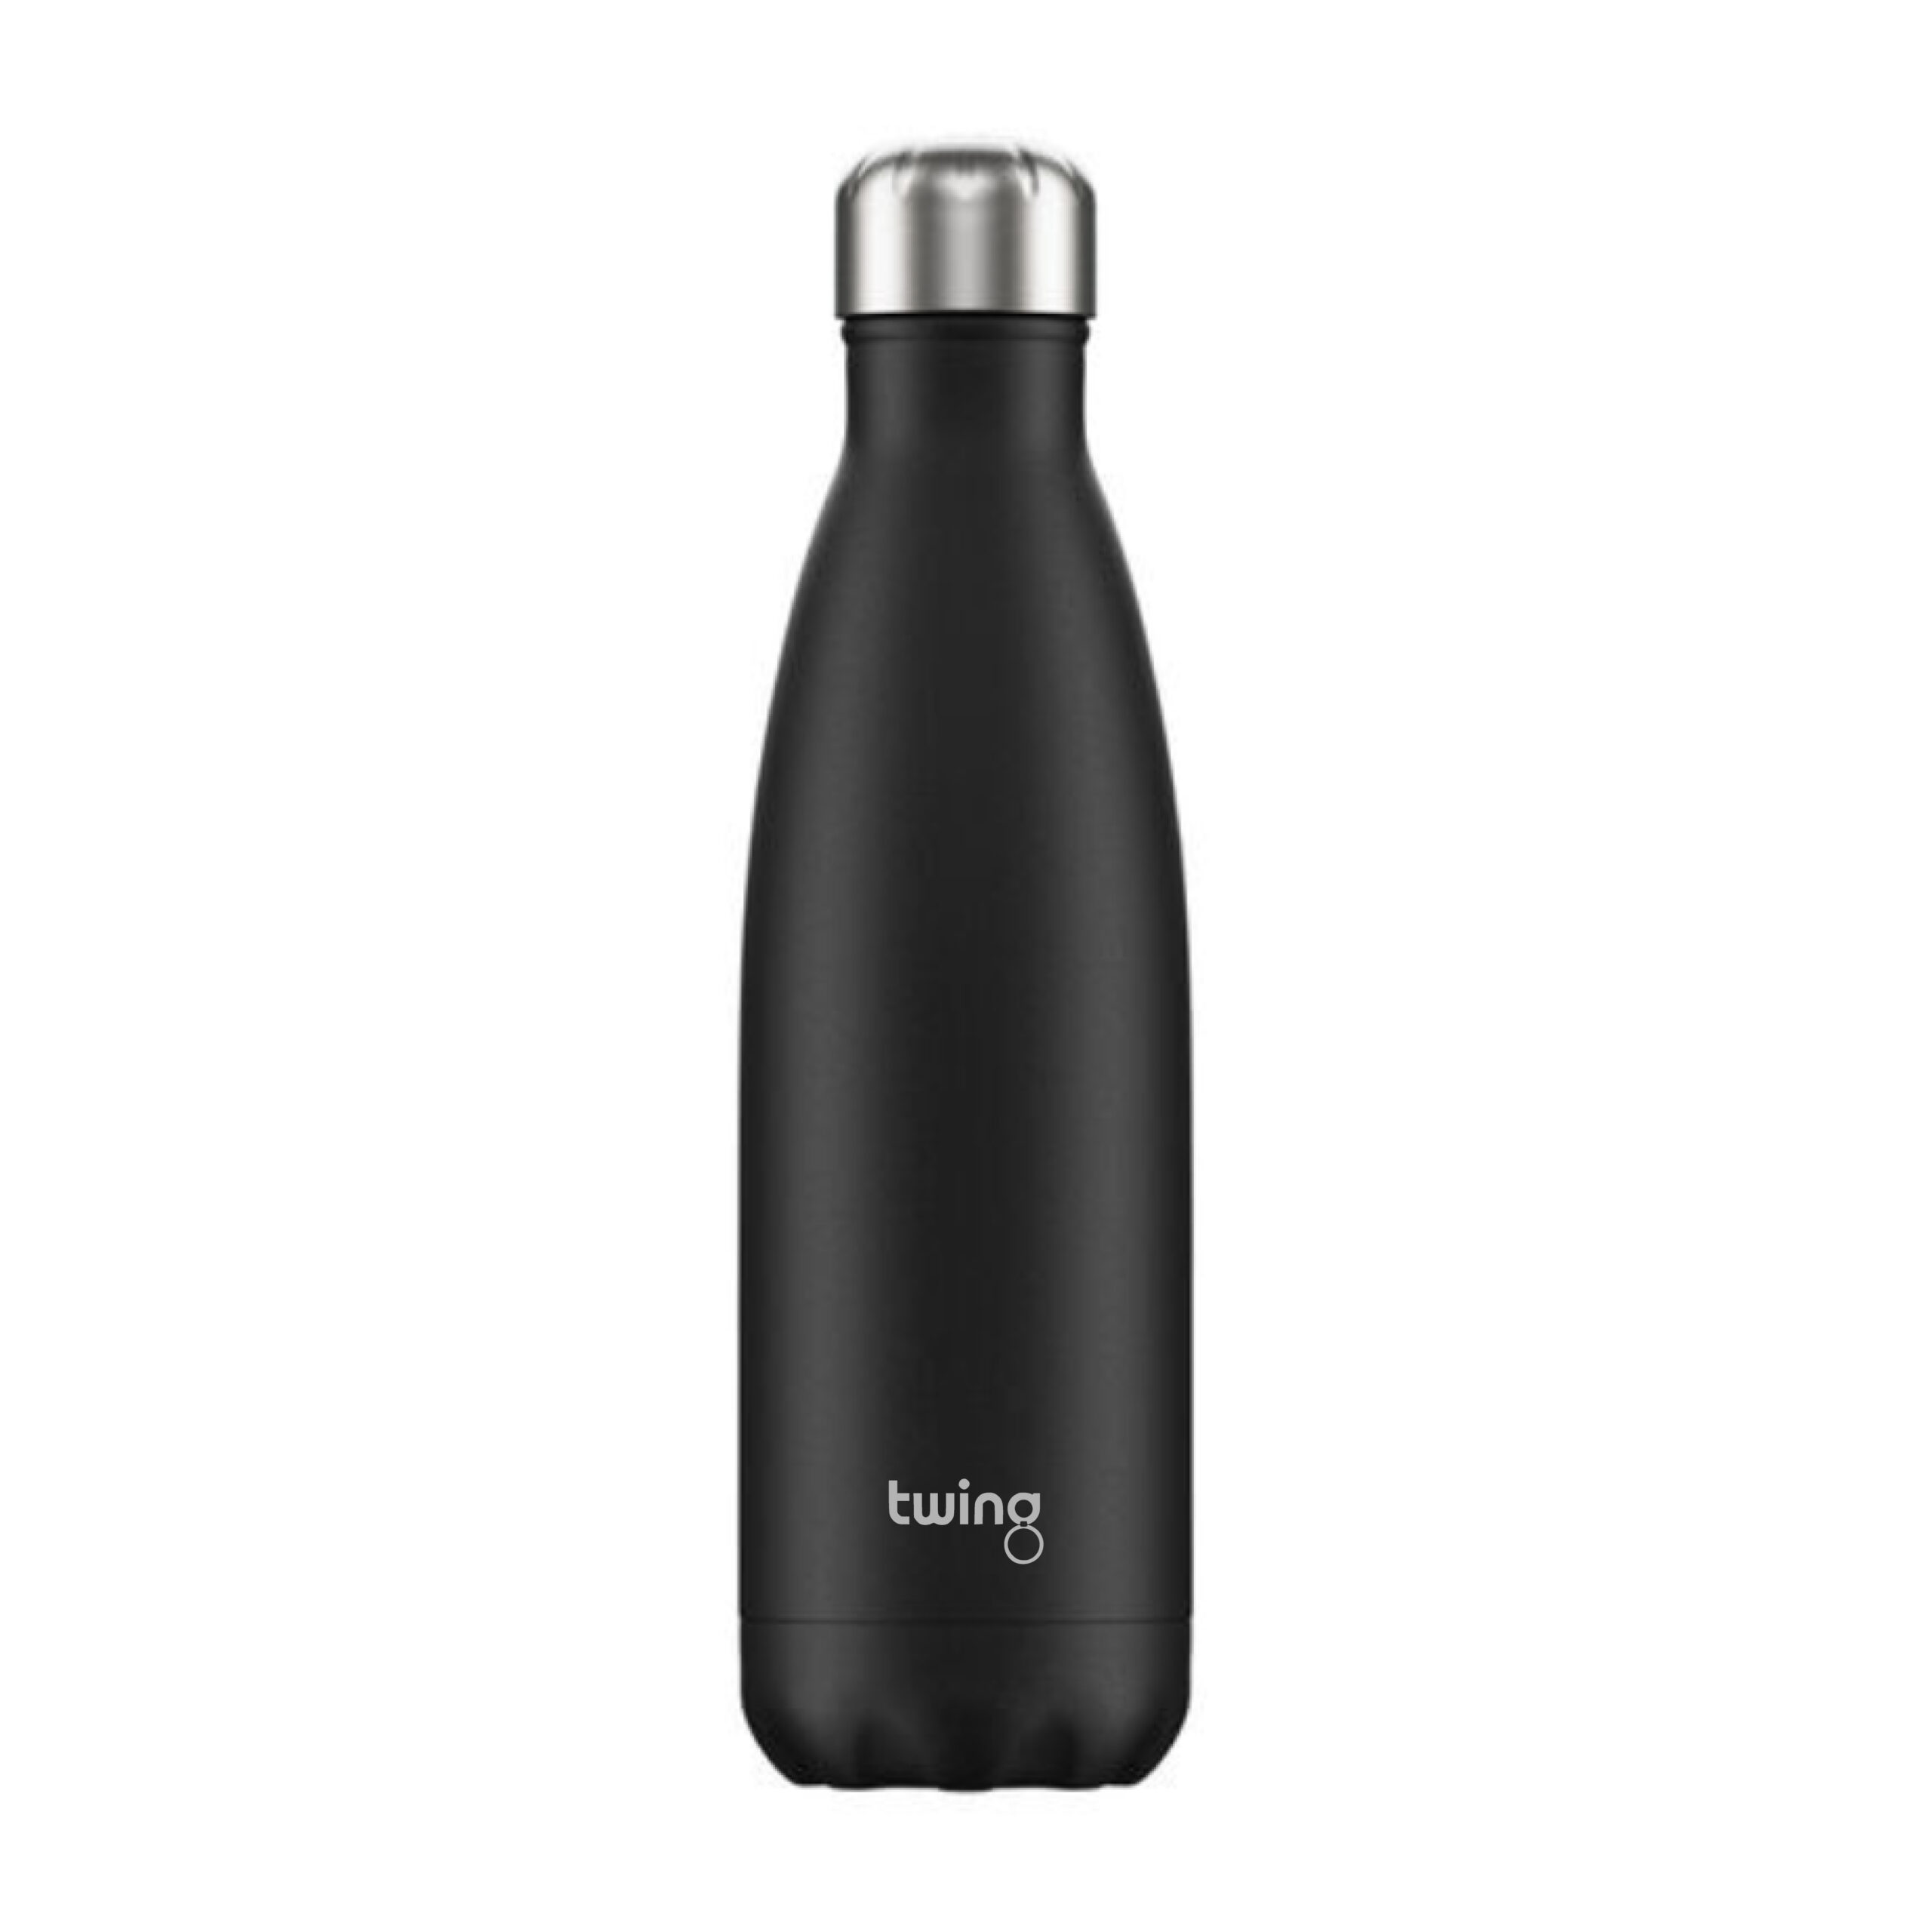 Twing Trinkflasche silber